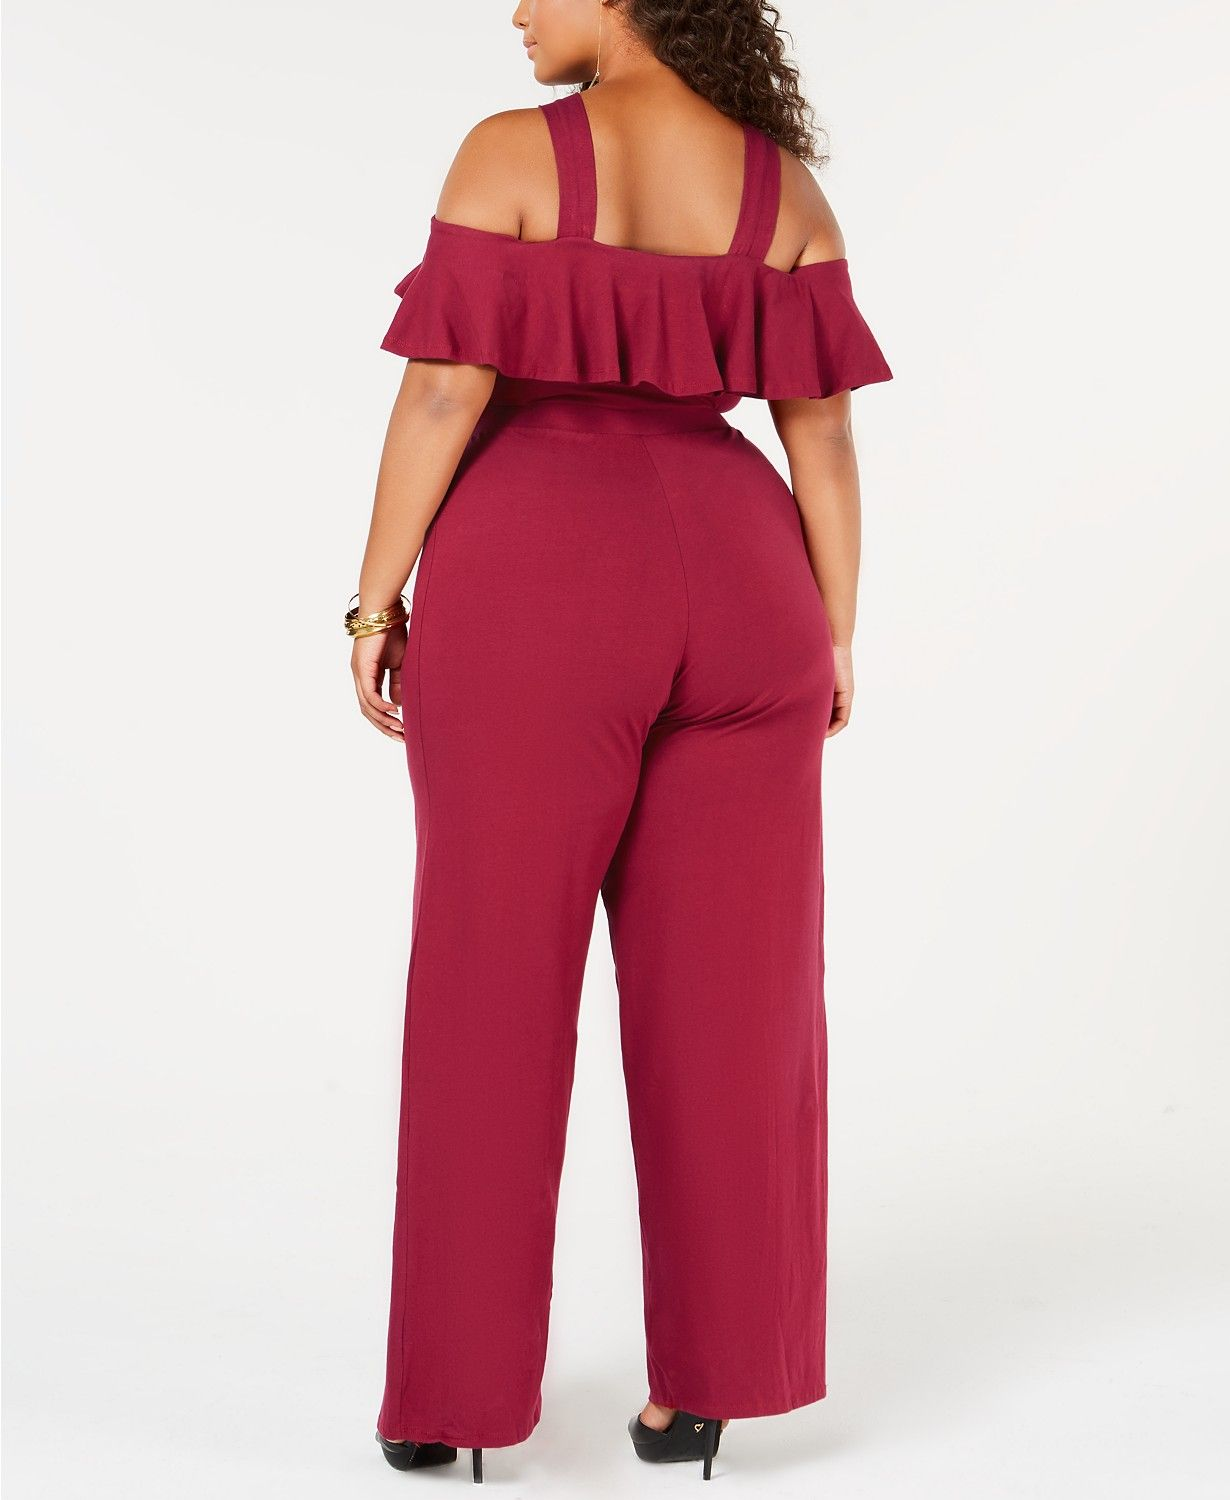 c74b4e313cd Rebdolls Ruffled Cold Shoulder Plus Size Jumpsuit from The Workshop at  Macy s - Jumpsuits   Rompers